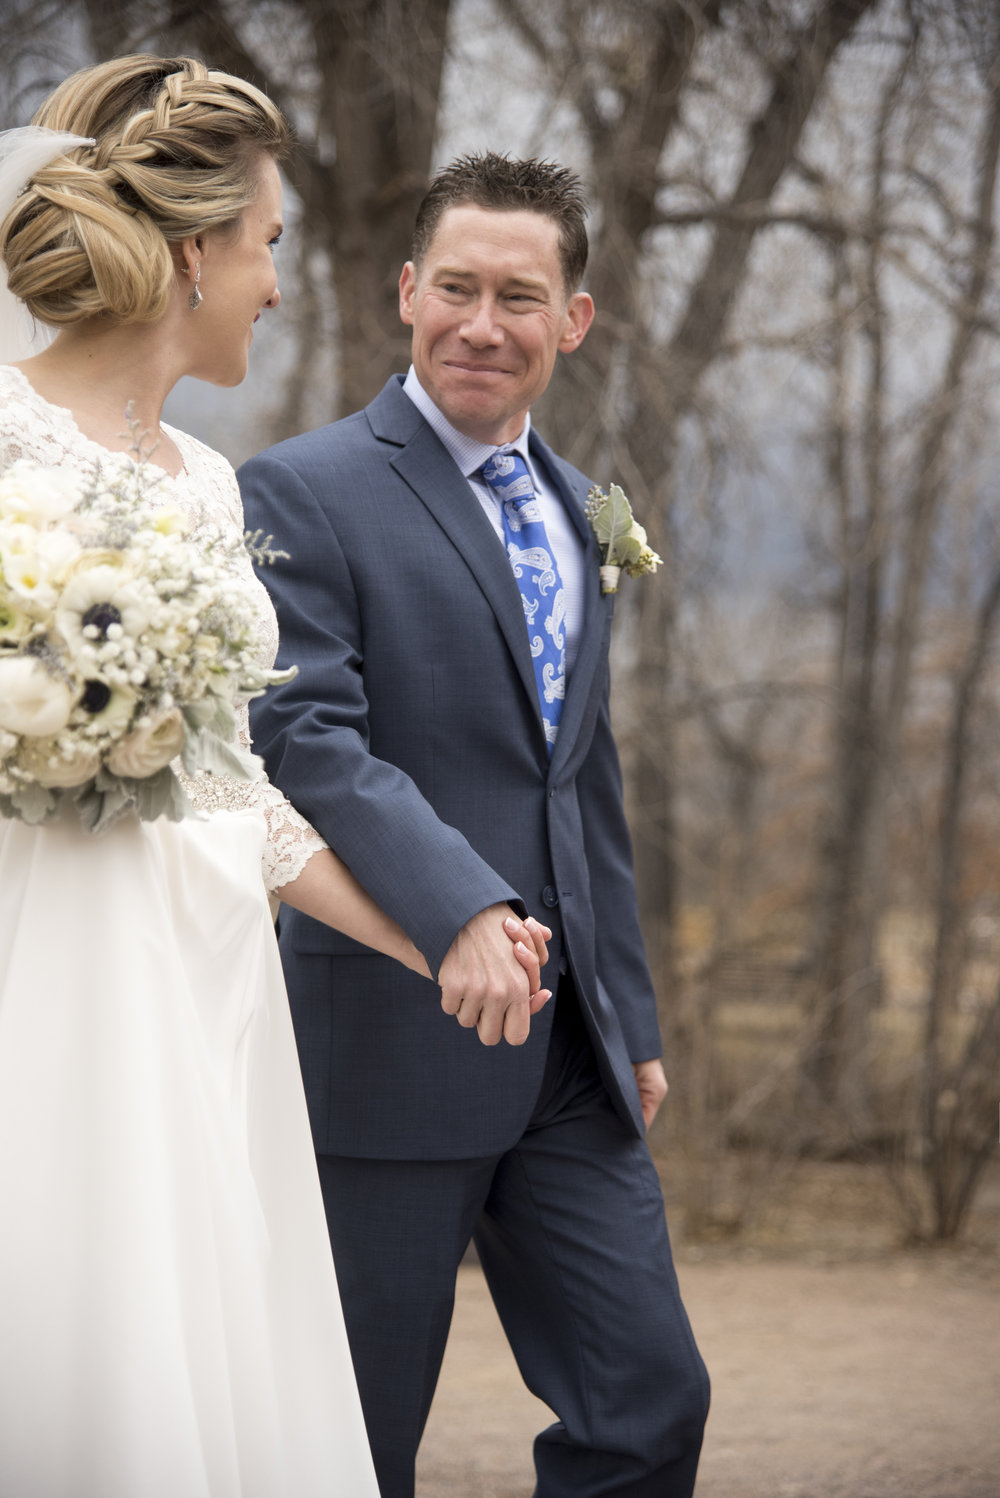 Groom smiling looking at bride | Mary and Brad's Outdoor Wedding at Hudson Gardens | Colorado Springs, Colorado Photographer | Farm Wedding Photographer | Apollo Fields Wedding Photojournalism